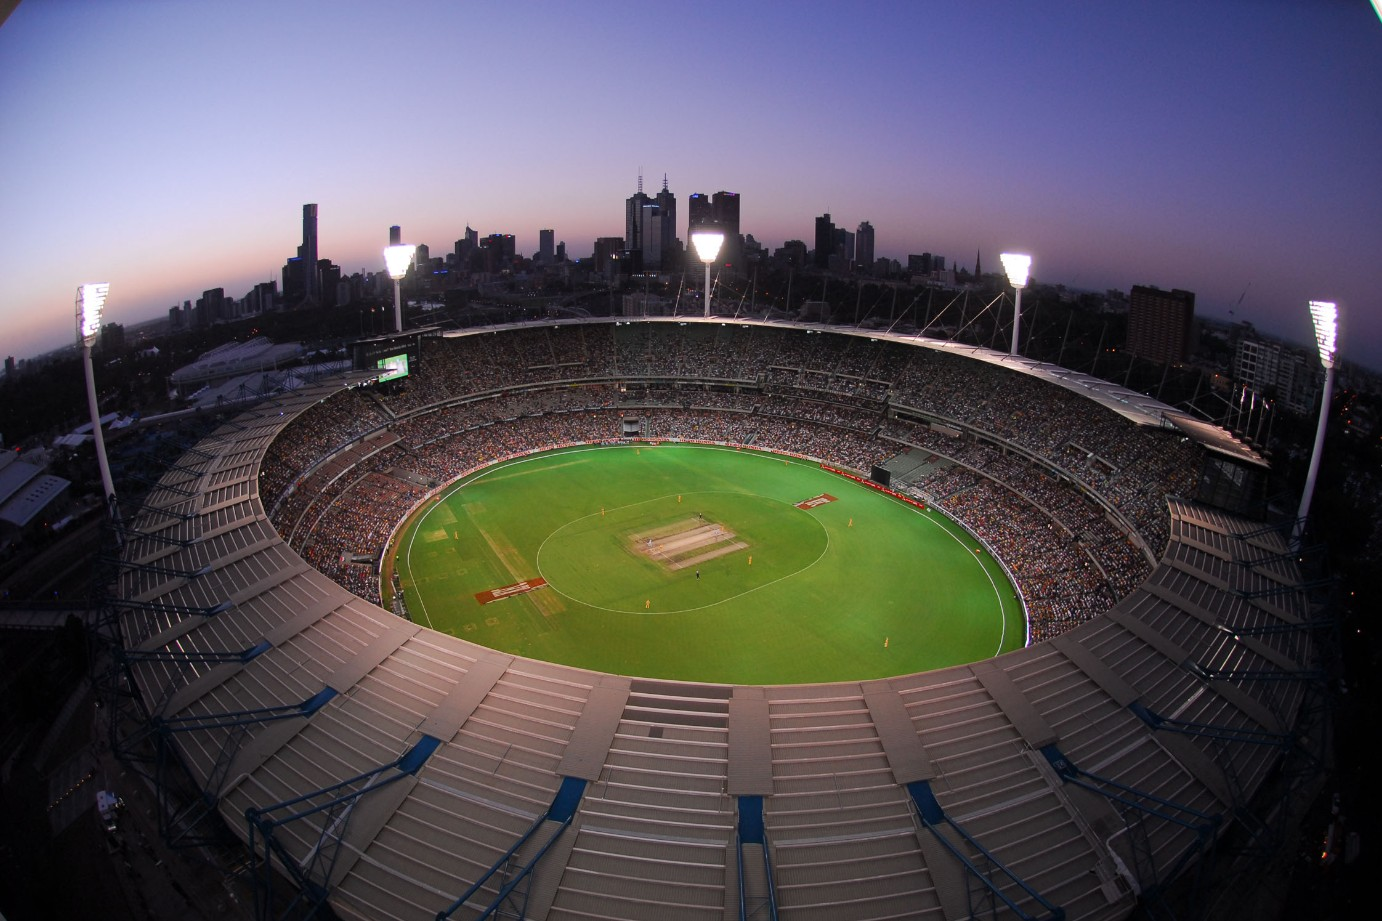 Melbourne Cricket Ground - Stayed